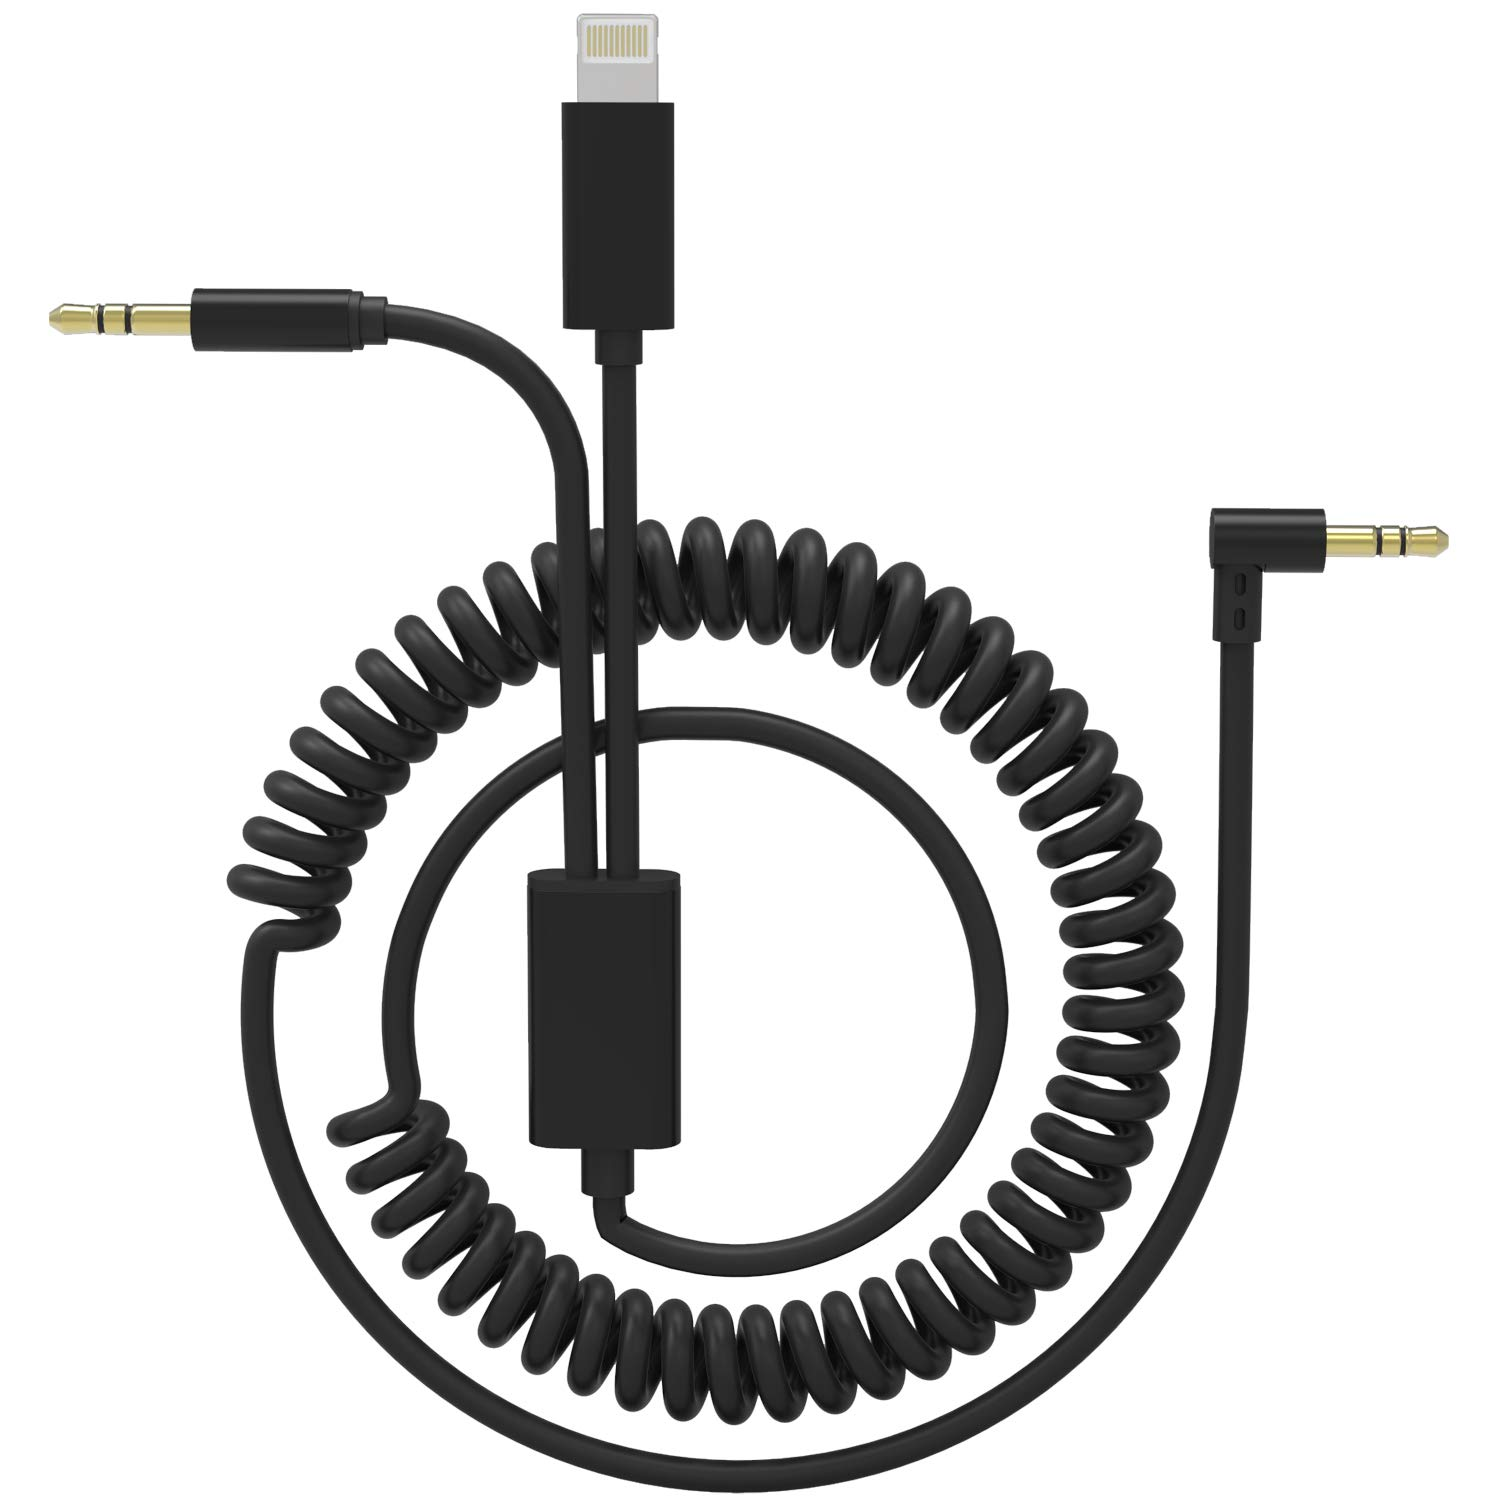 Dreamvasion Car Aux Cord Compatible for iPhone X 7, 2 in 1 Spring [Extend to 6.5ft] Audio Cable with 90 Degree 3.5mm Headphone Jack Adapter for iPhone 8/X/7 Plus, Android Phone to Car Stereo/Speaker